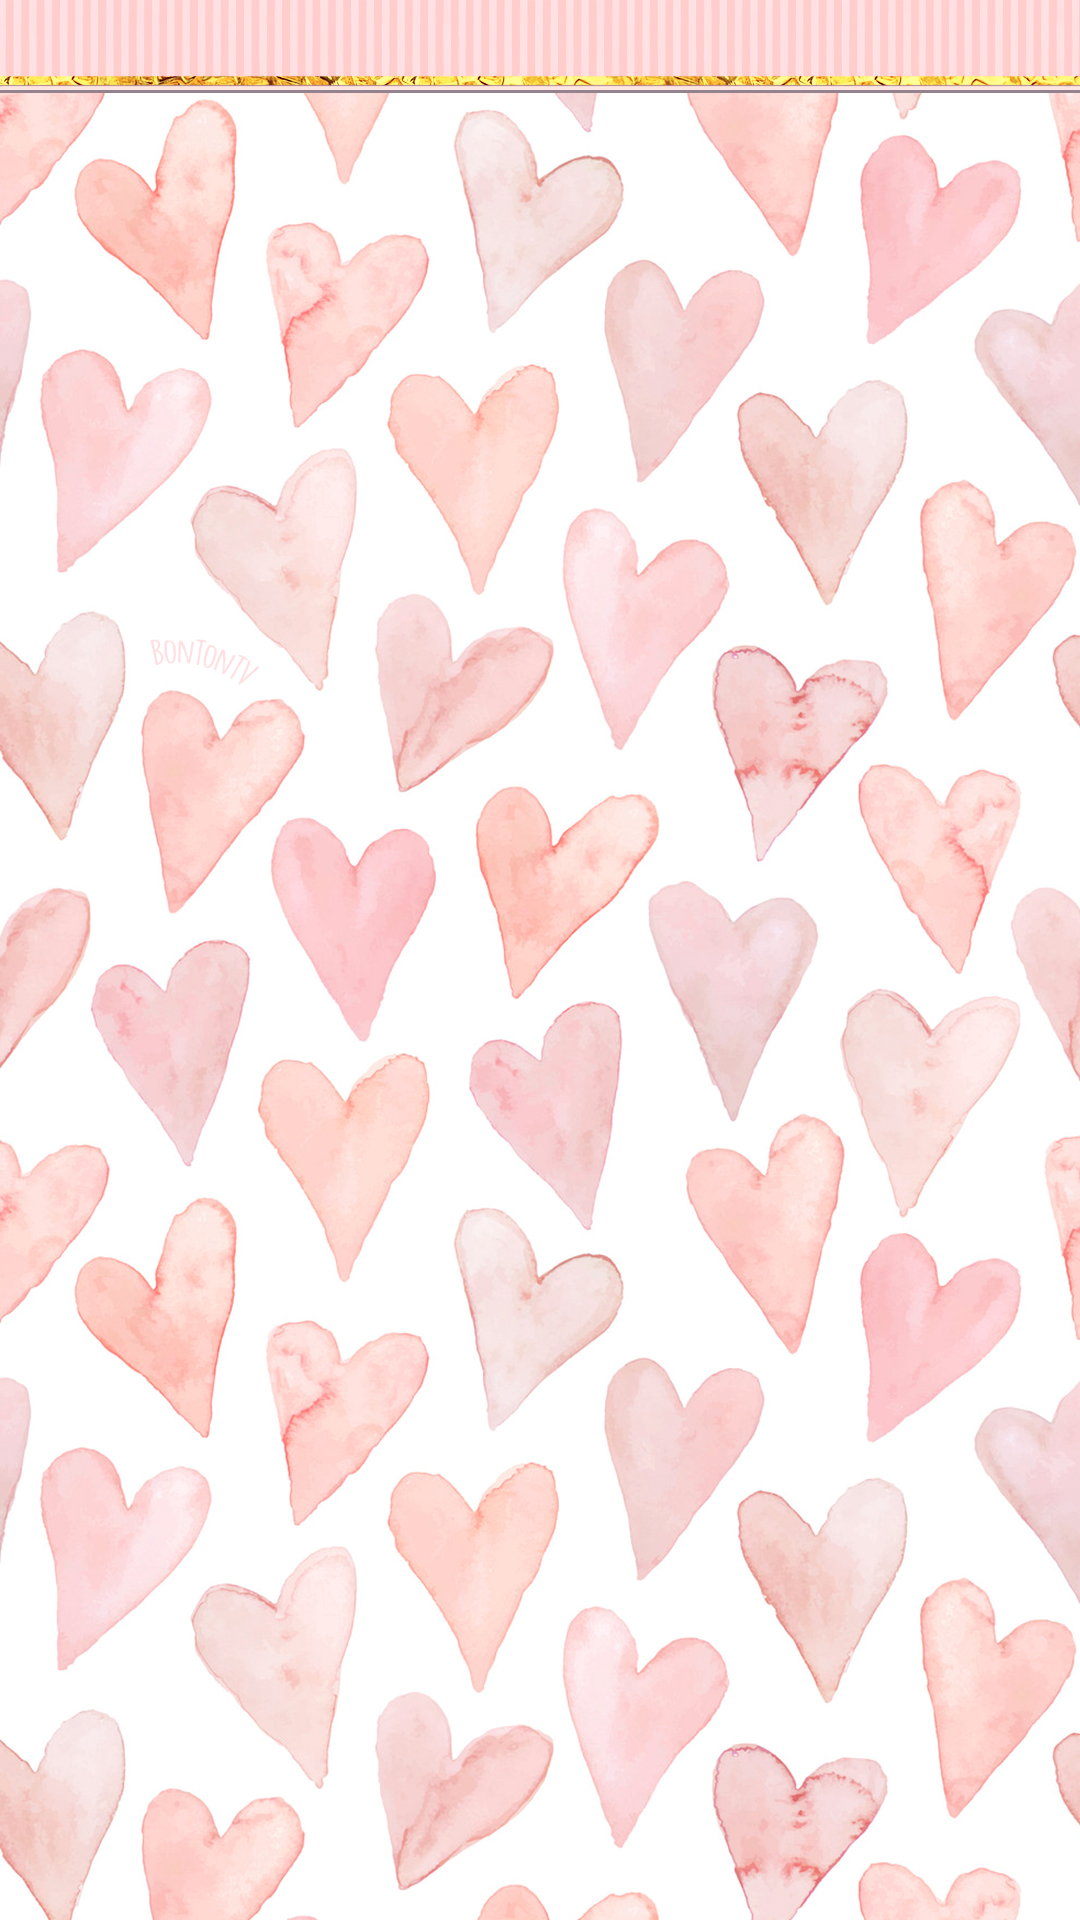 Phone Wallpapers Hd Cute Pink Hearts With Golden Details By Bonton Tv Free Backgrounds 1080x1920 Wallp Cute Pink Background Phone Wallpaper Watch Wallpaper